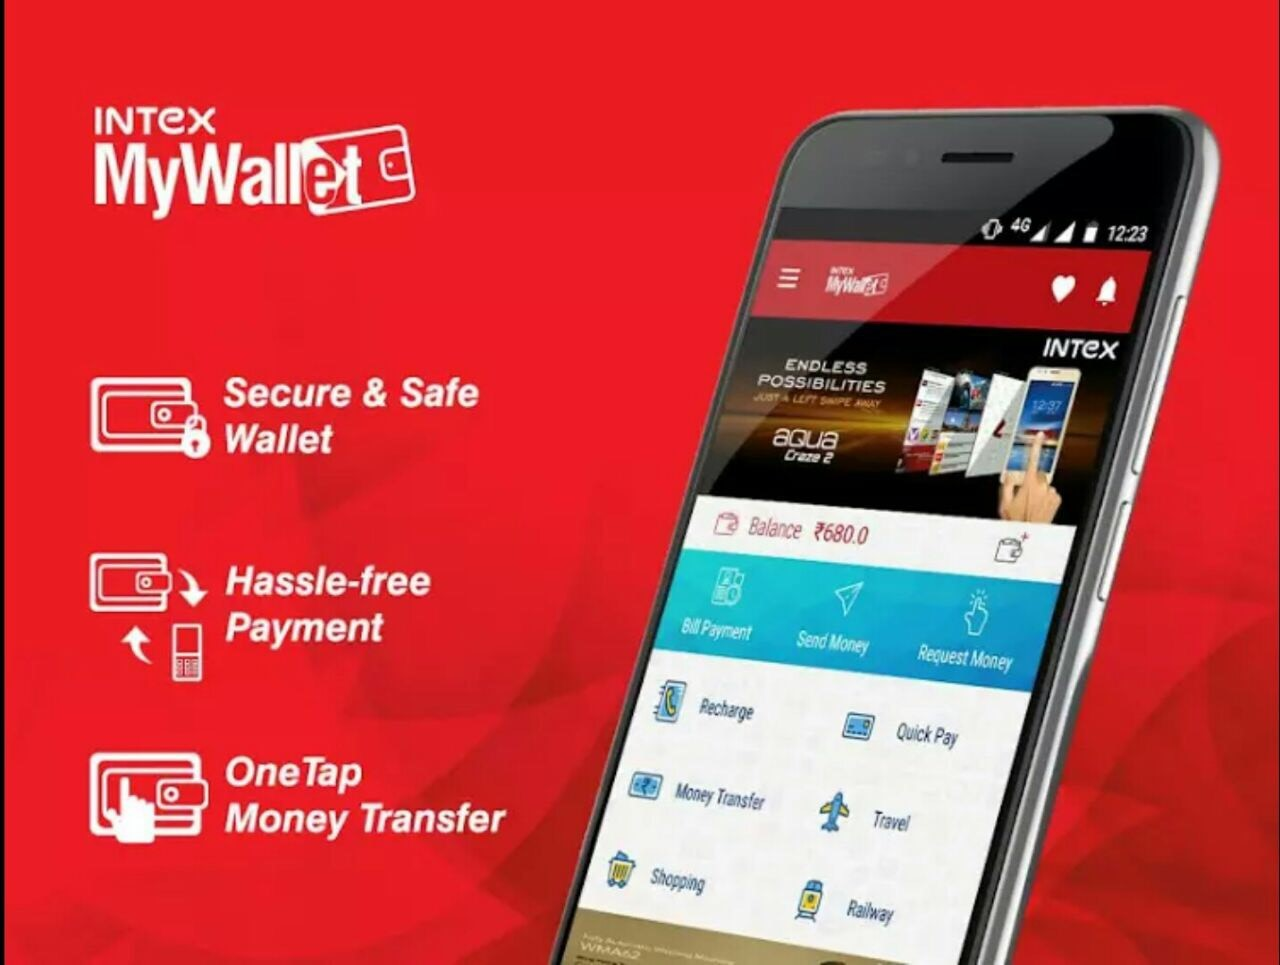 Intex MyWallet app is now available on Google Play